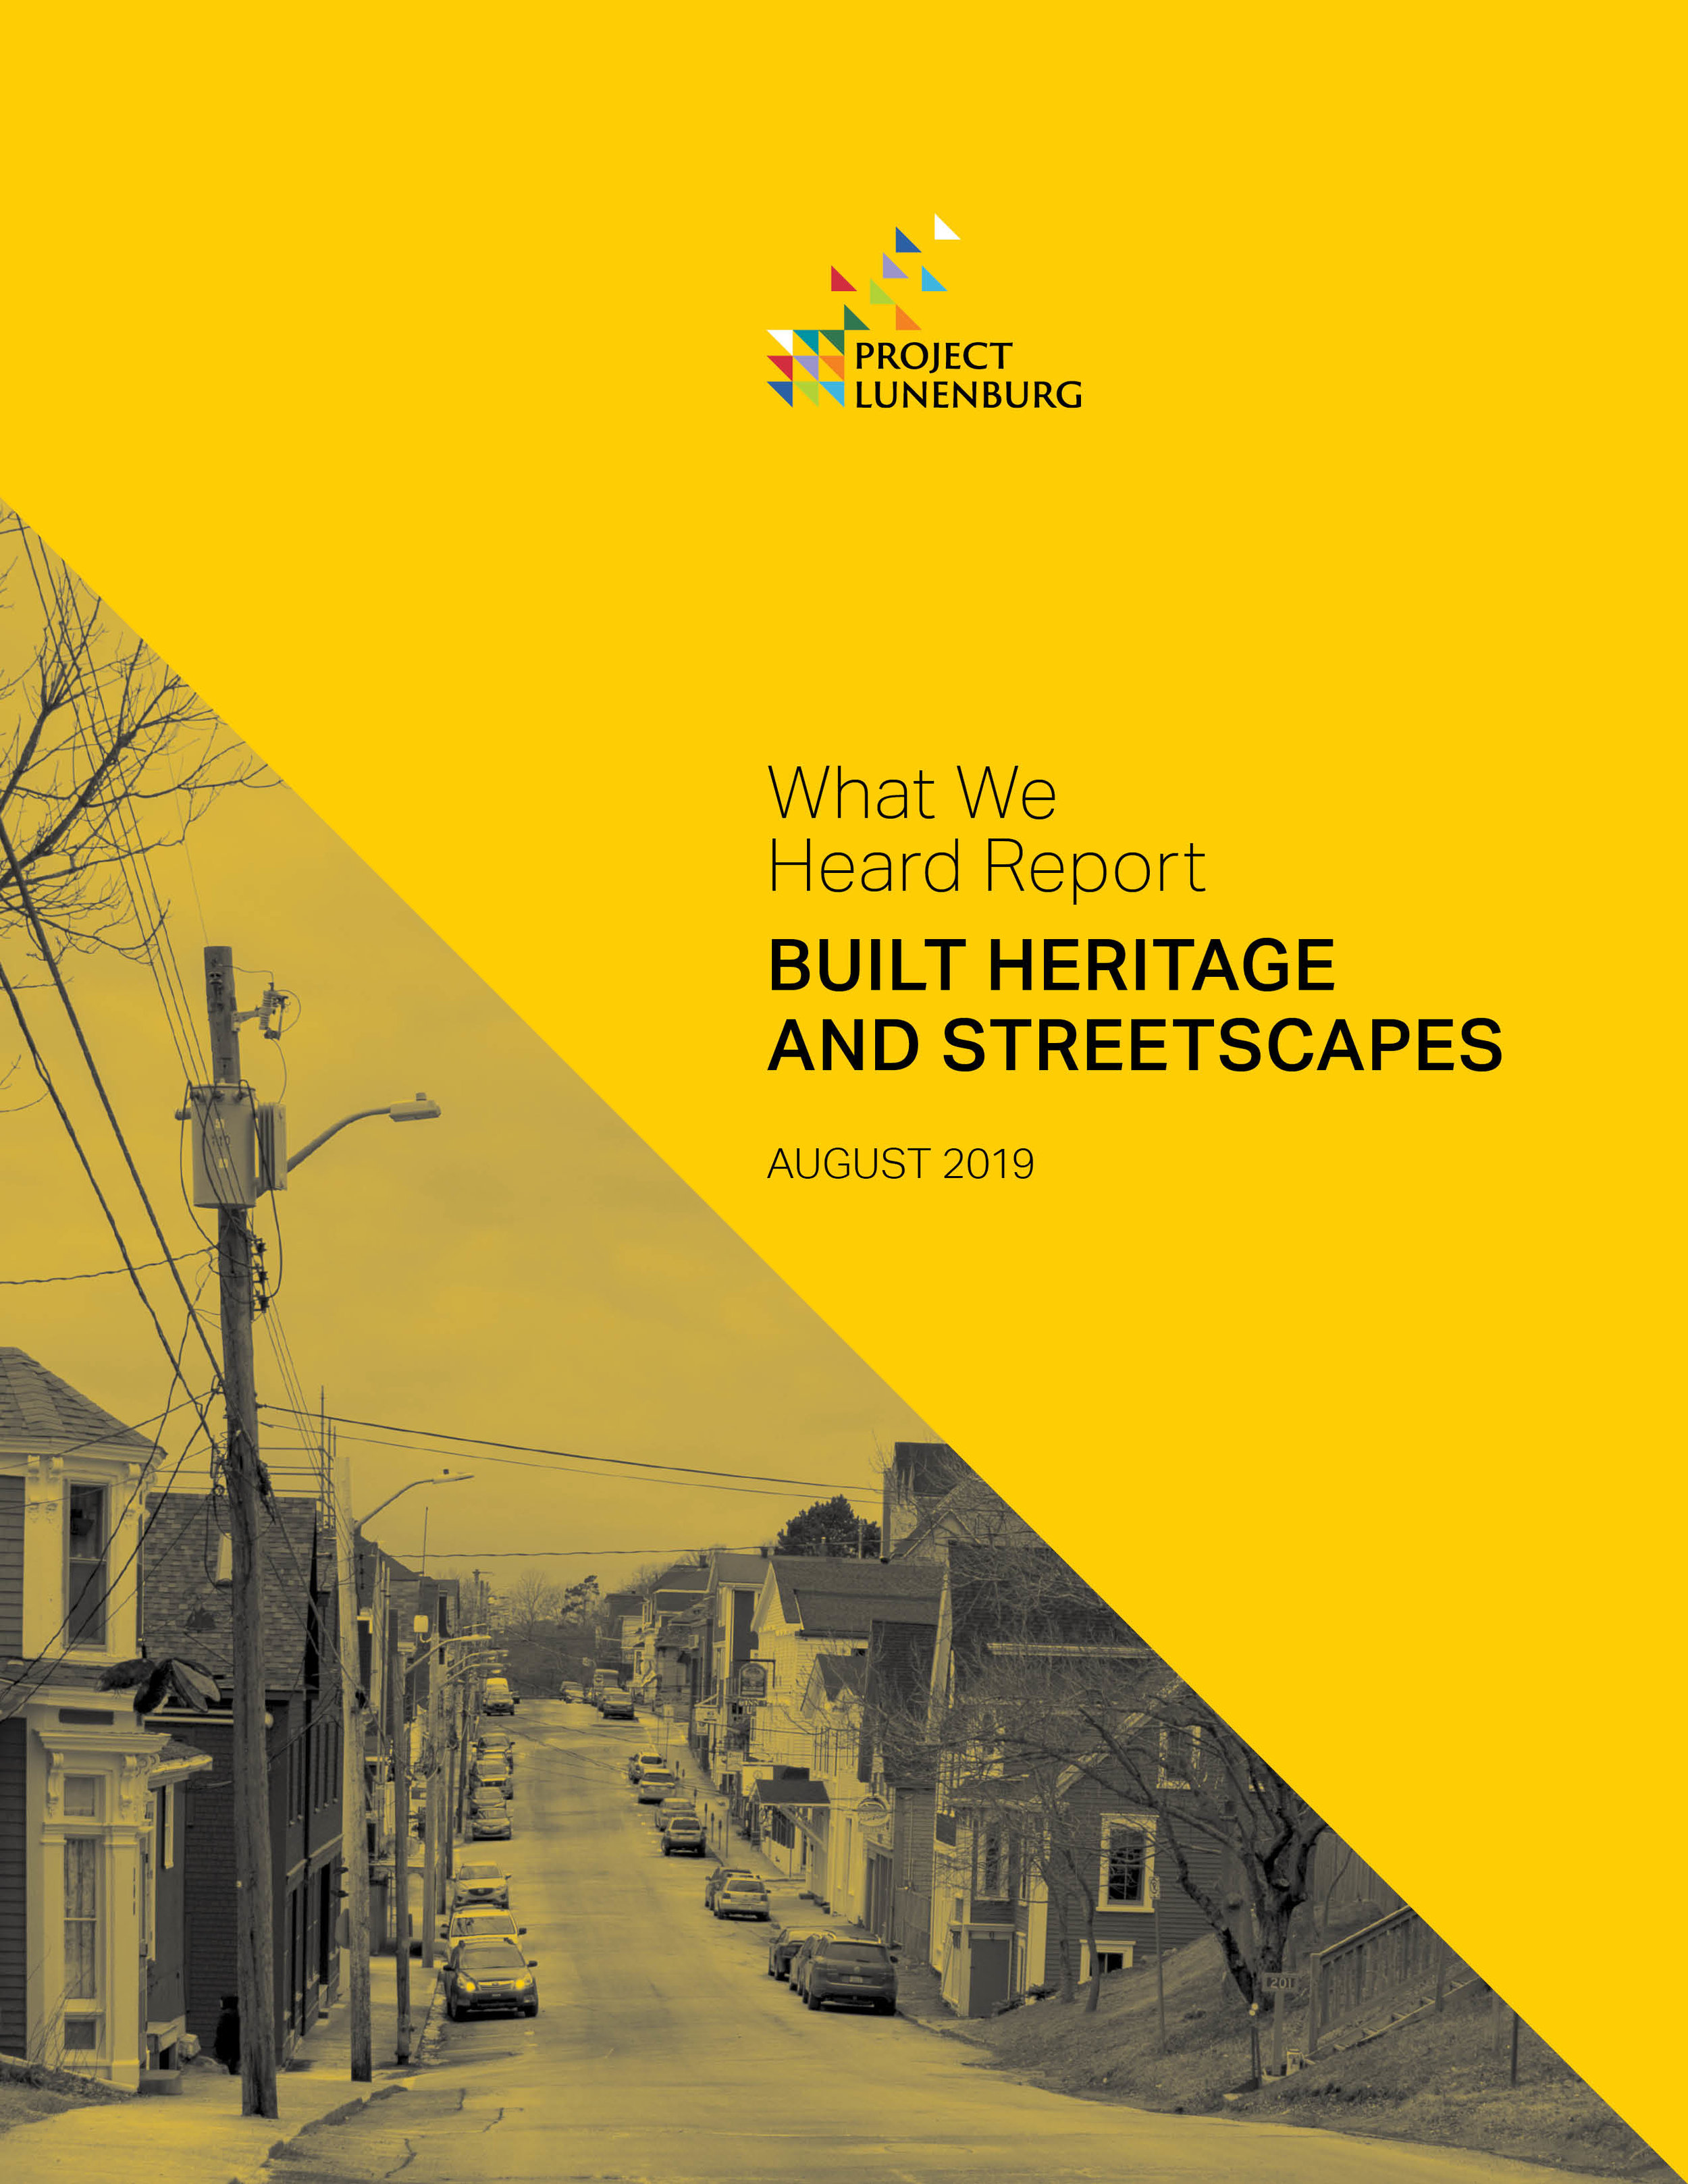 What We Heard: Built Heritage and Streetscapes  The results of a community workshop and online engagement, with major themes about the form and character of the built heritage, historical narratives, and the public realm of streets.